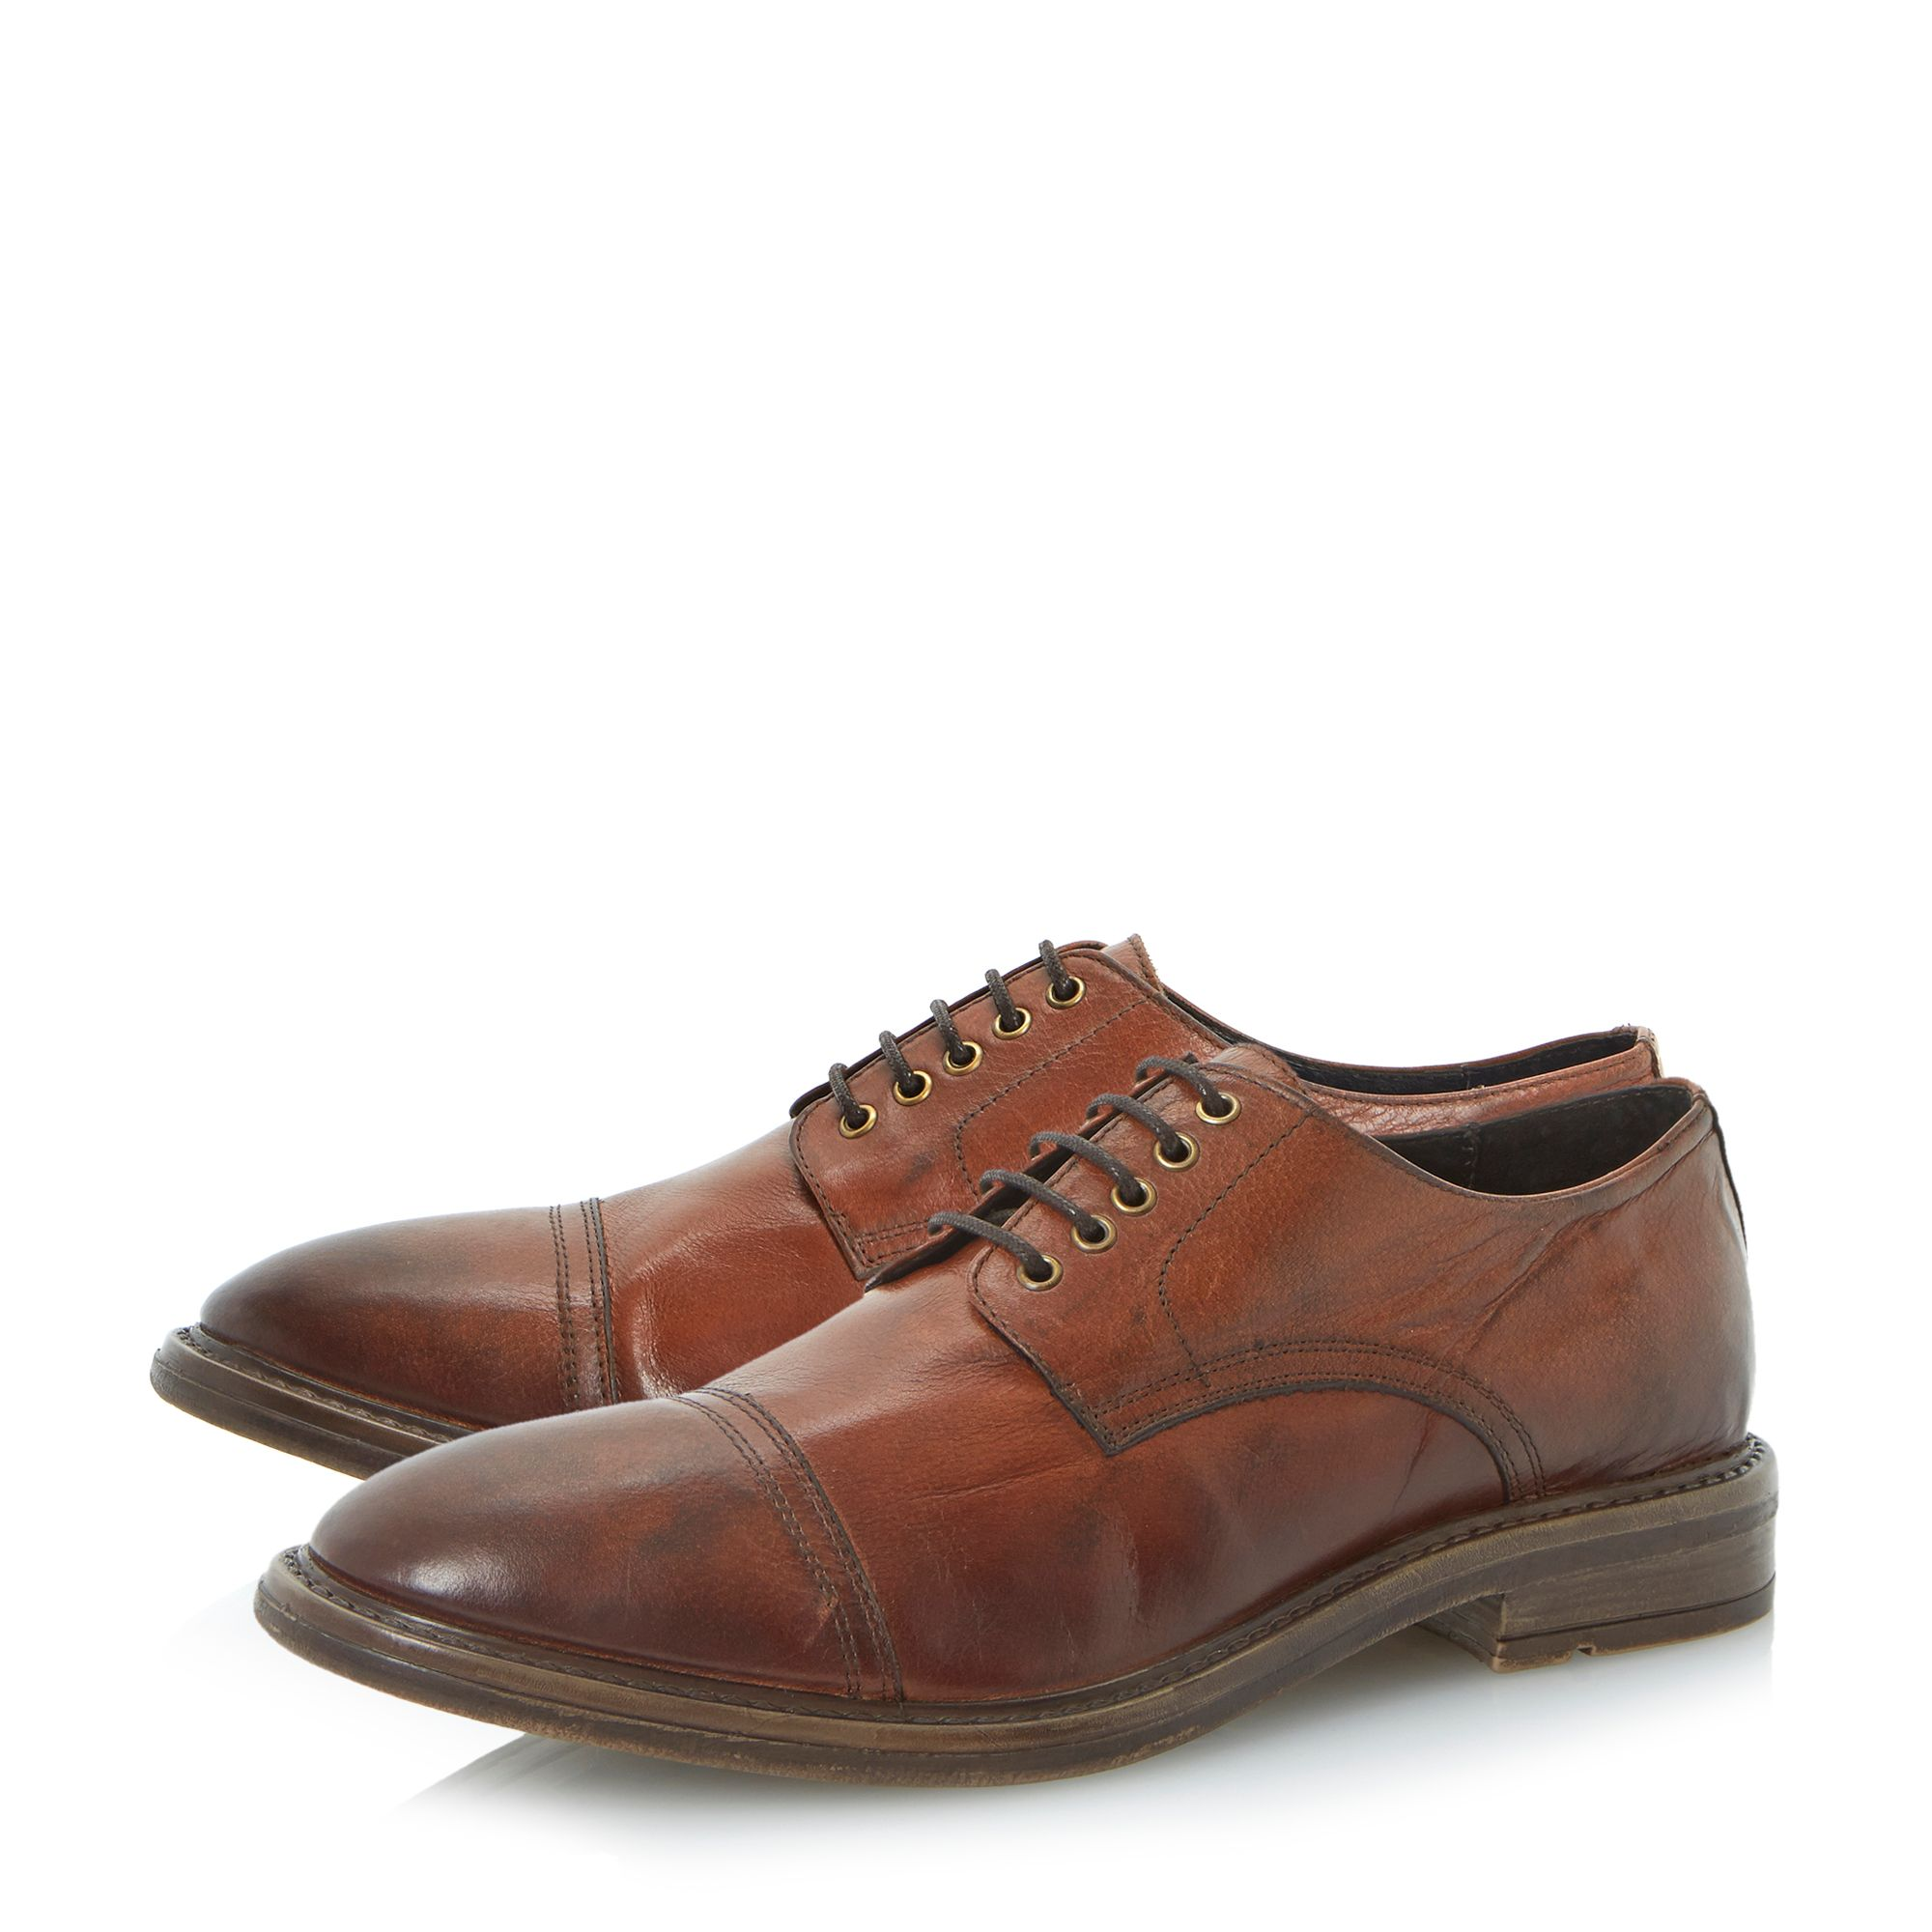 Benson toecap cleated lace up shoes